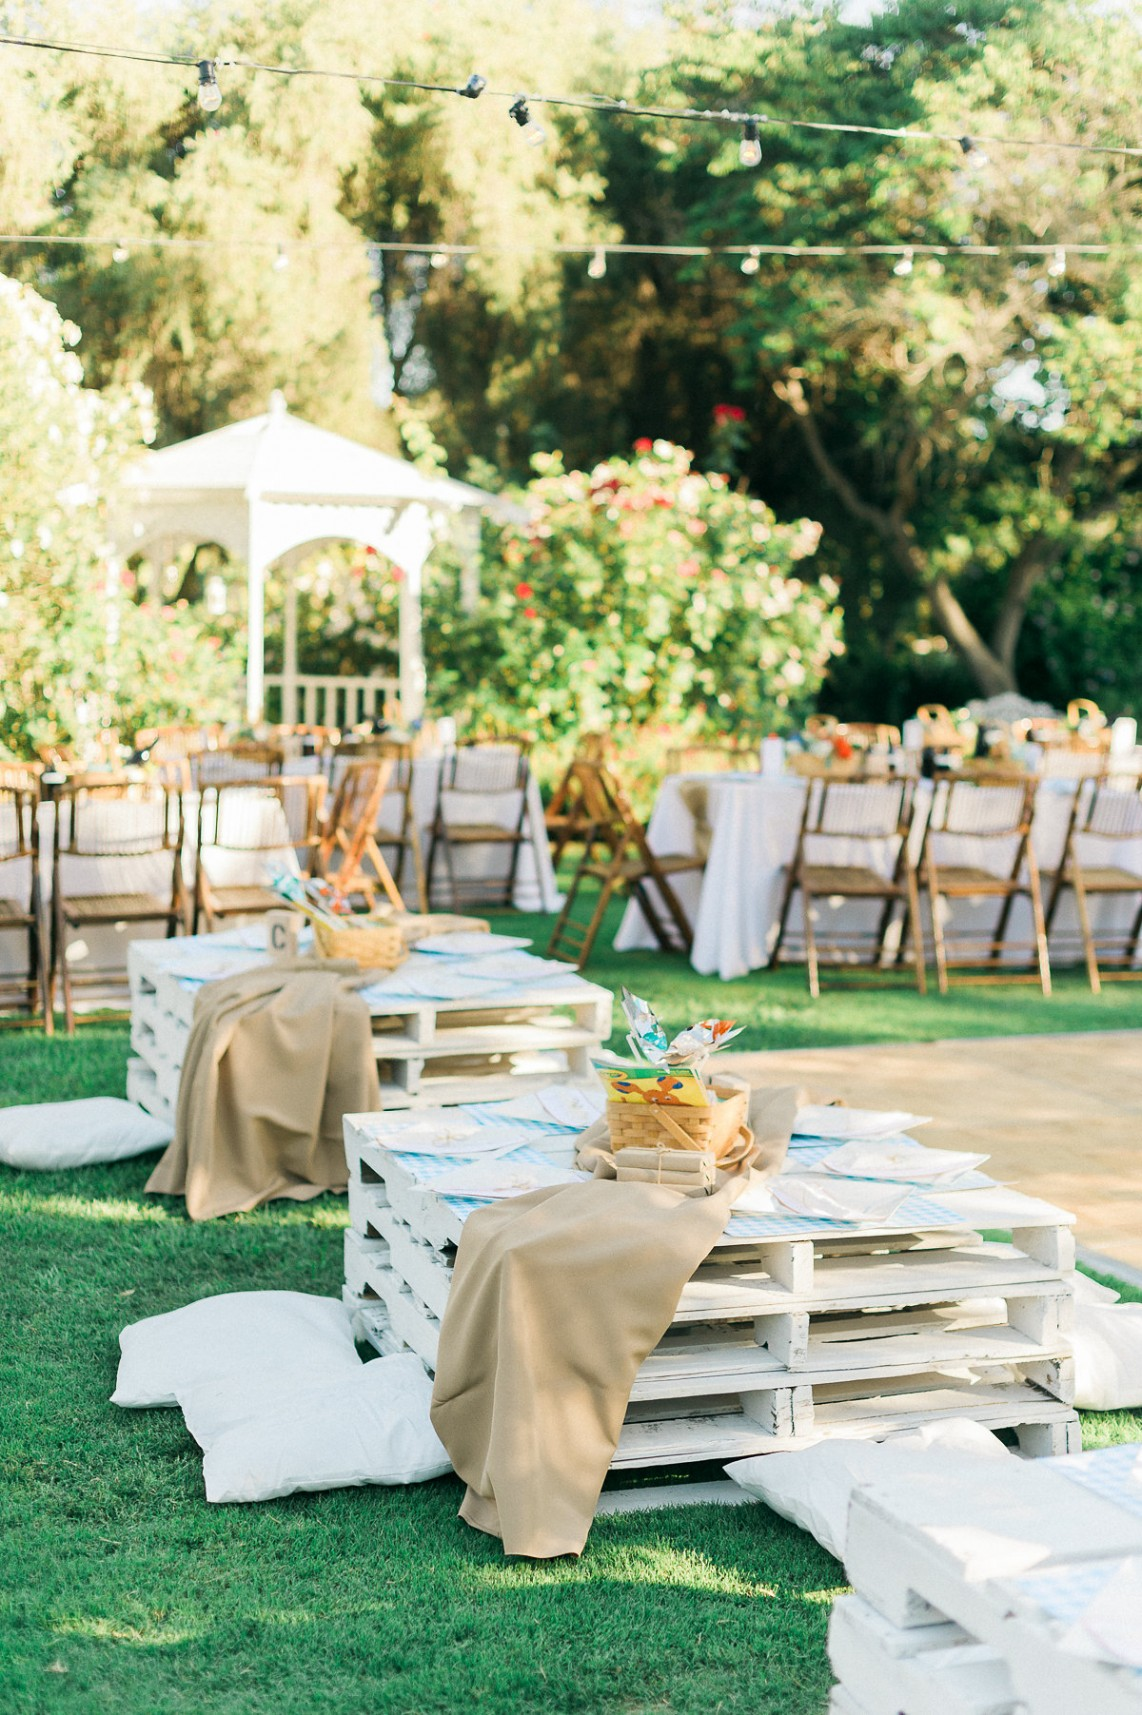 Cute Picnic California Wedding Modwedding